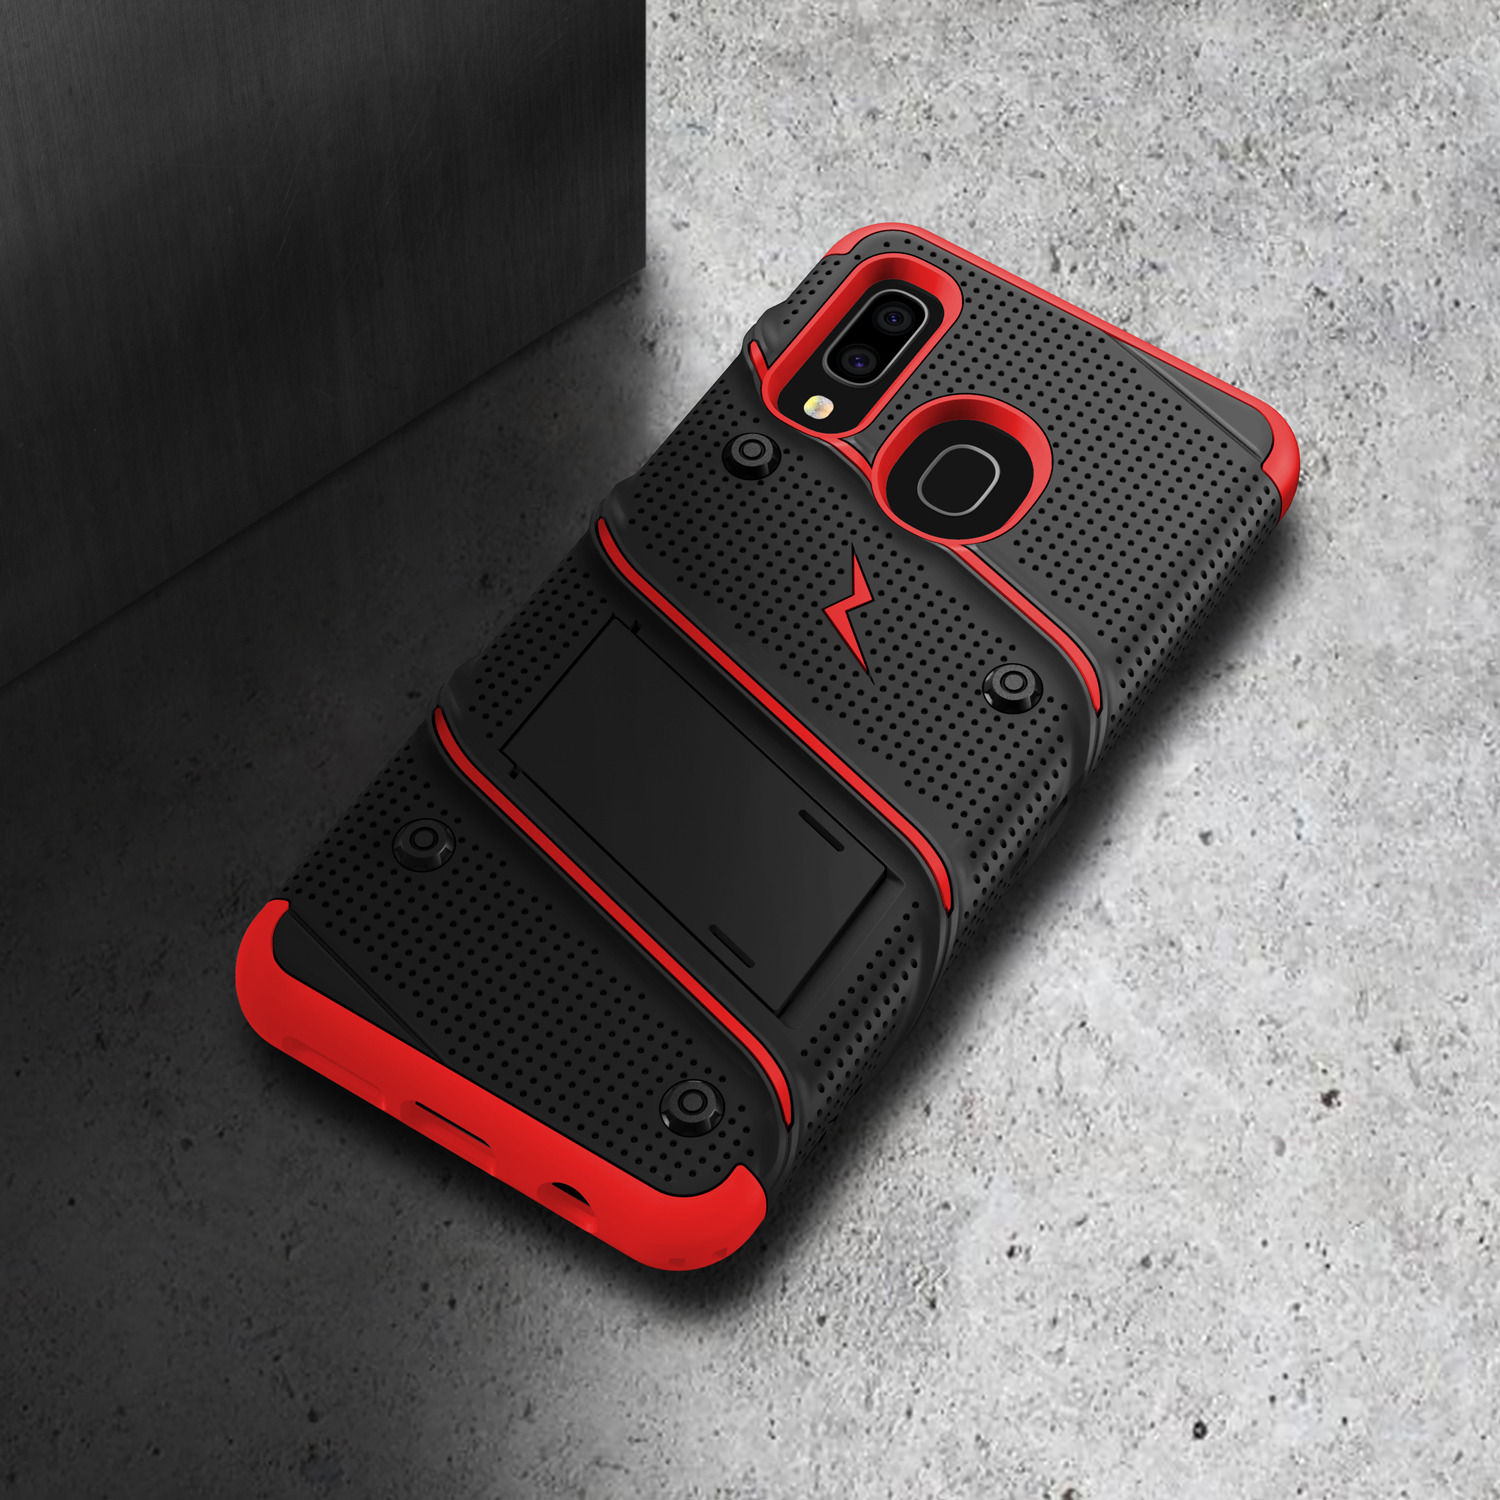 Black Heavy-Duty Military-Grade Drop Protection w//Kickstand Included Belt Clip Holster Tempered Glass Lanyard Galaxy A50 ZIZO Bolt Series for Samsung Galaxy A20 Case